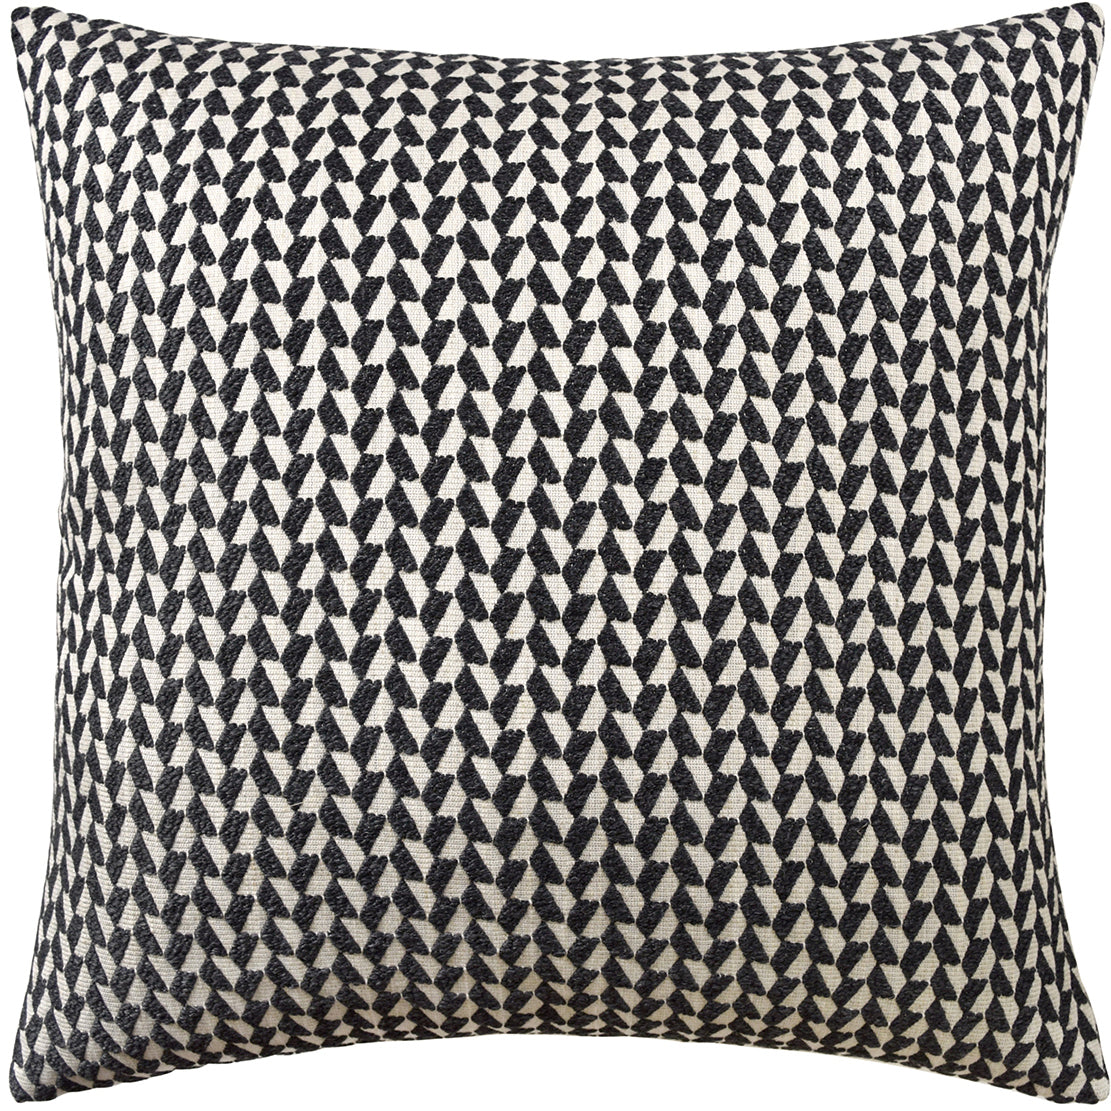 Ryan Studio Pillows Emile, Charcoal